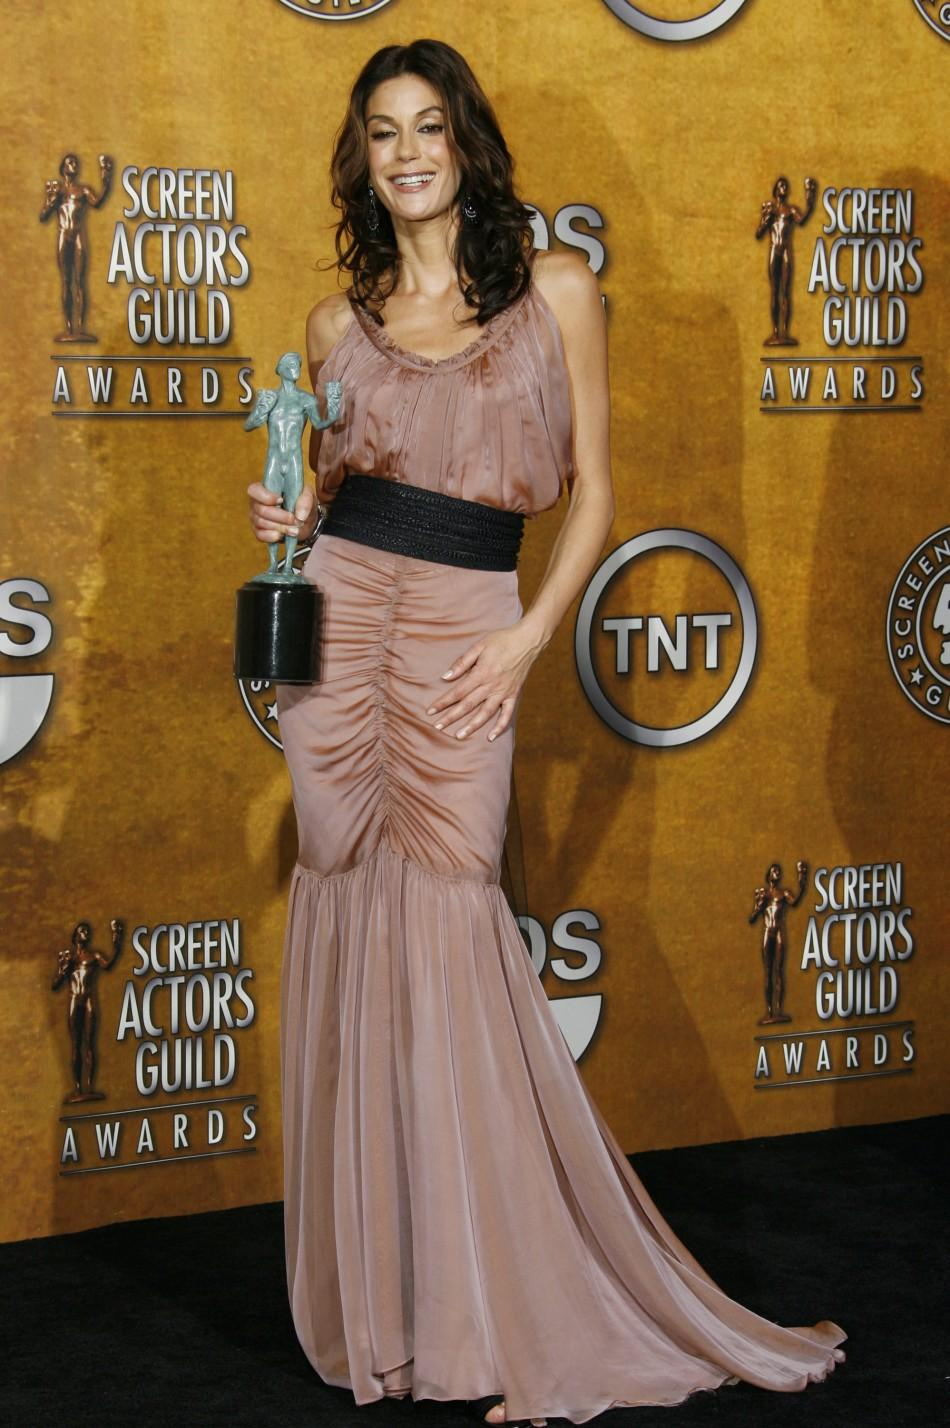 Actress Teri Hatcher poses with award at 12th annual Screen Actors Guild Awards in Los Angeles